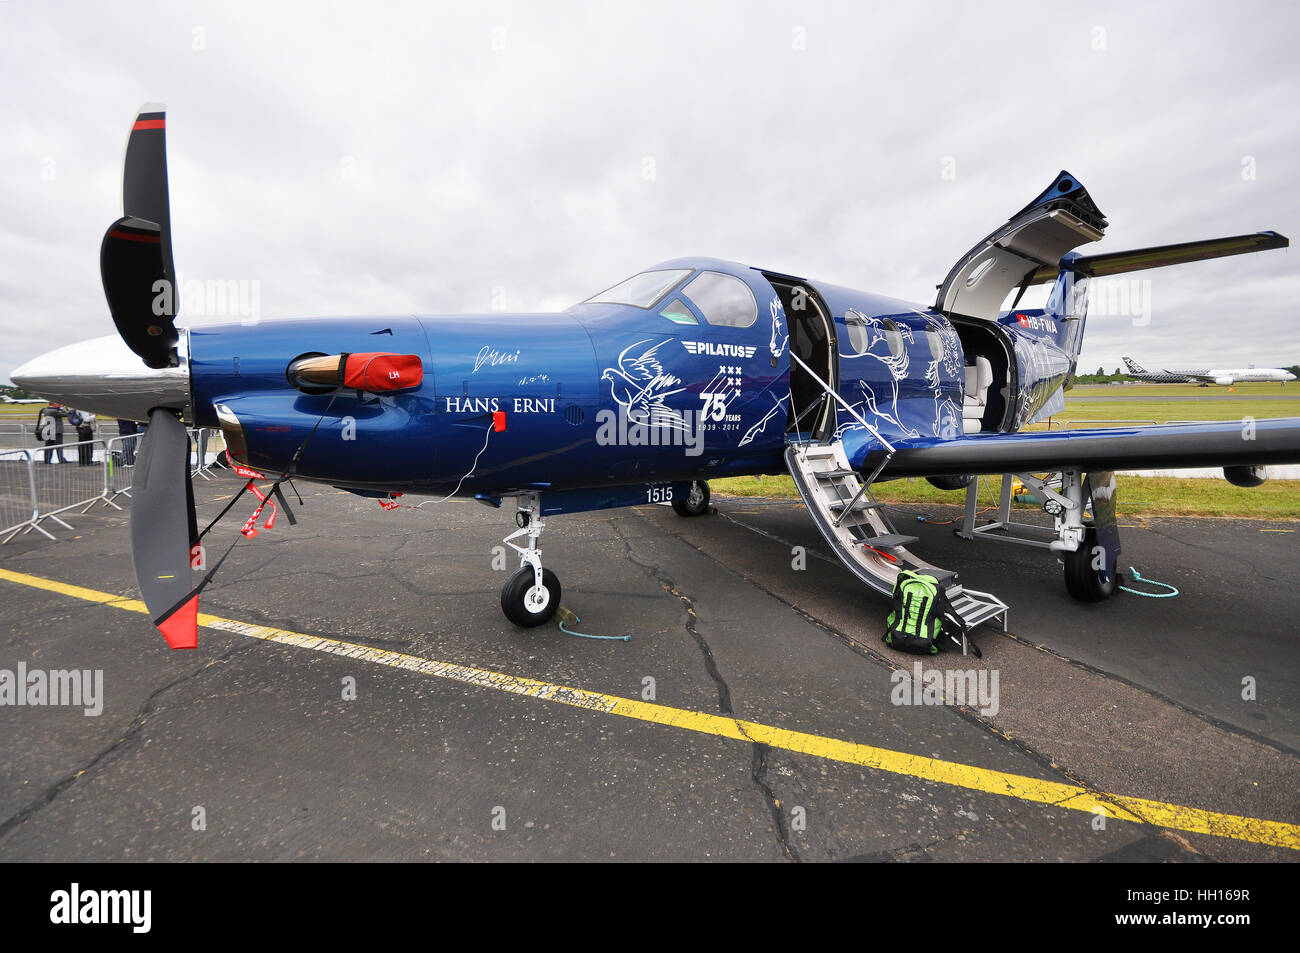 Pilatus PC-12 is a single-engine turboprop passenger and cargo aircraft manufactured by Pilatus Aircraft of Switzerland. - Stock Image